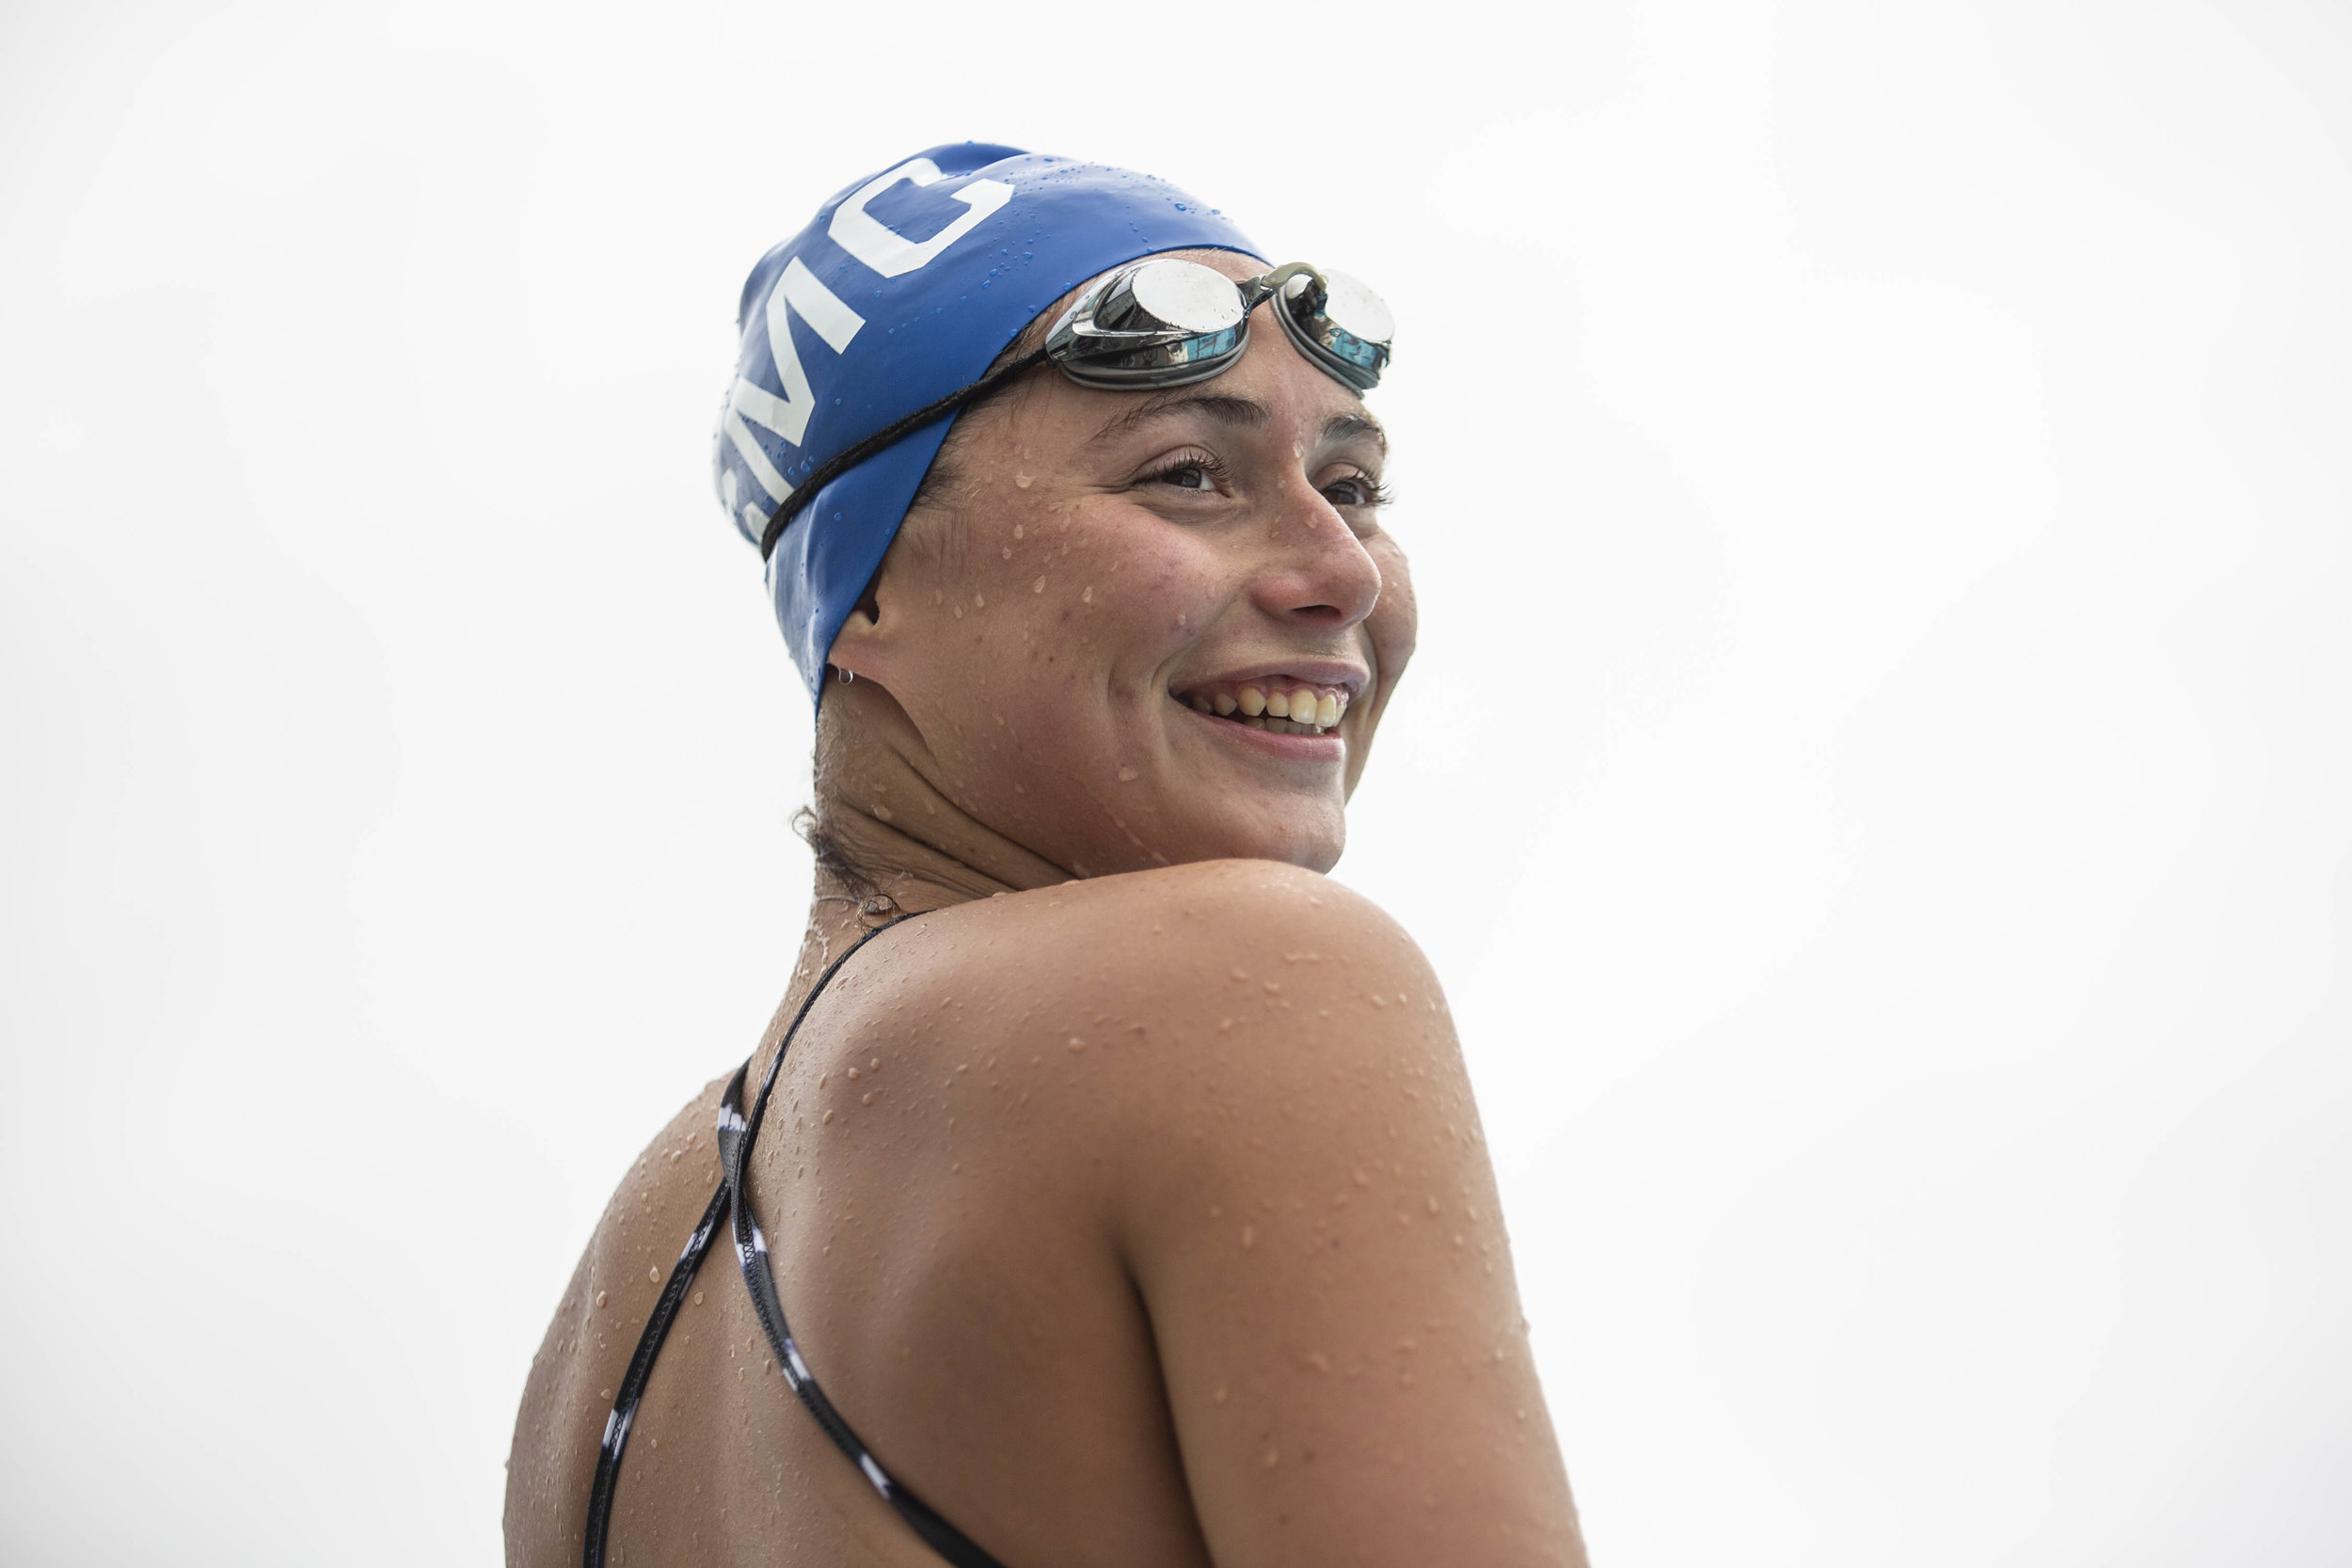 Sana Shoket from Santa Monica College (SMC) swimming team, practicing for State Championship in San Jose. Santa Monica College on April 29, 2019, Santa Monica, Calif. (Yasamin Jtehrani / The Corsair)